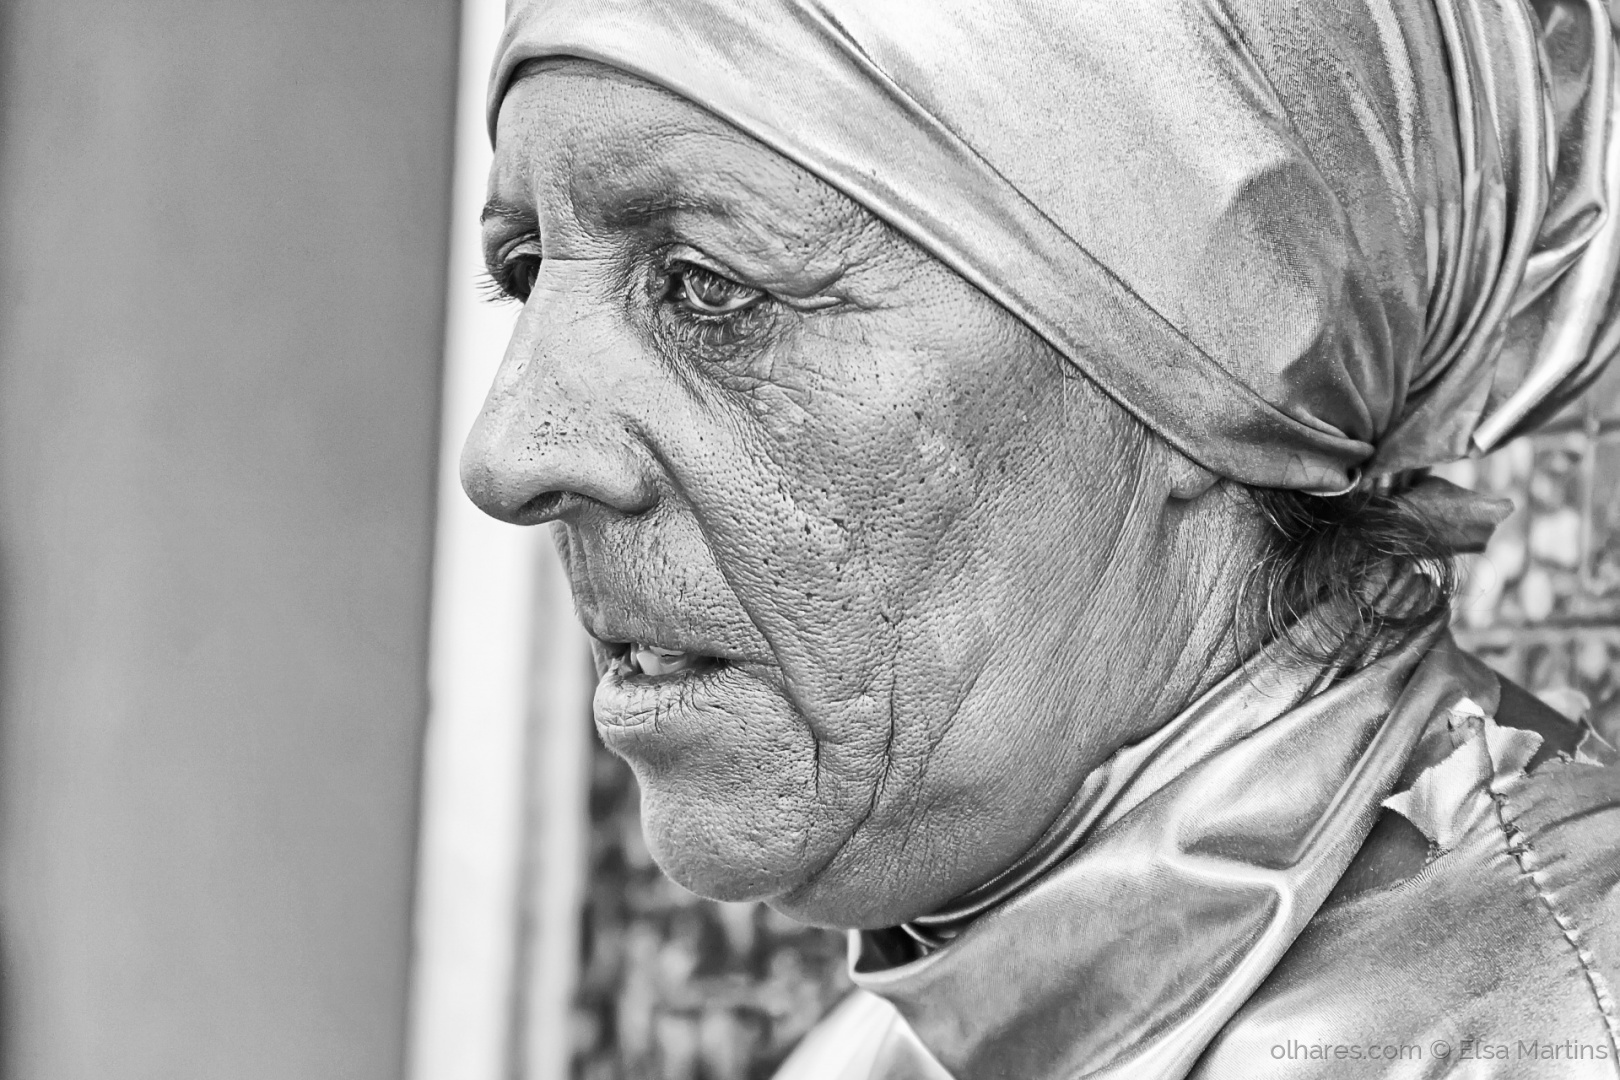 Retratos/I saw her standing there,,, in a silver world!